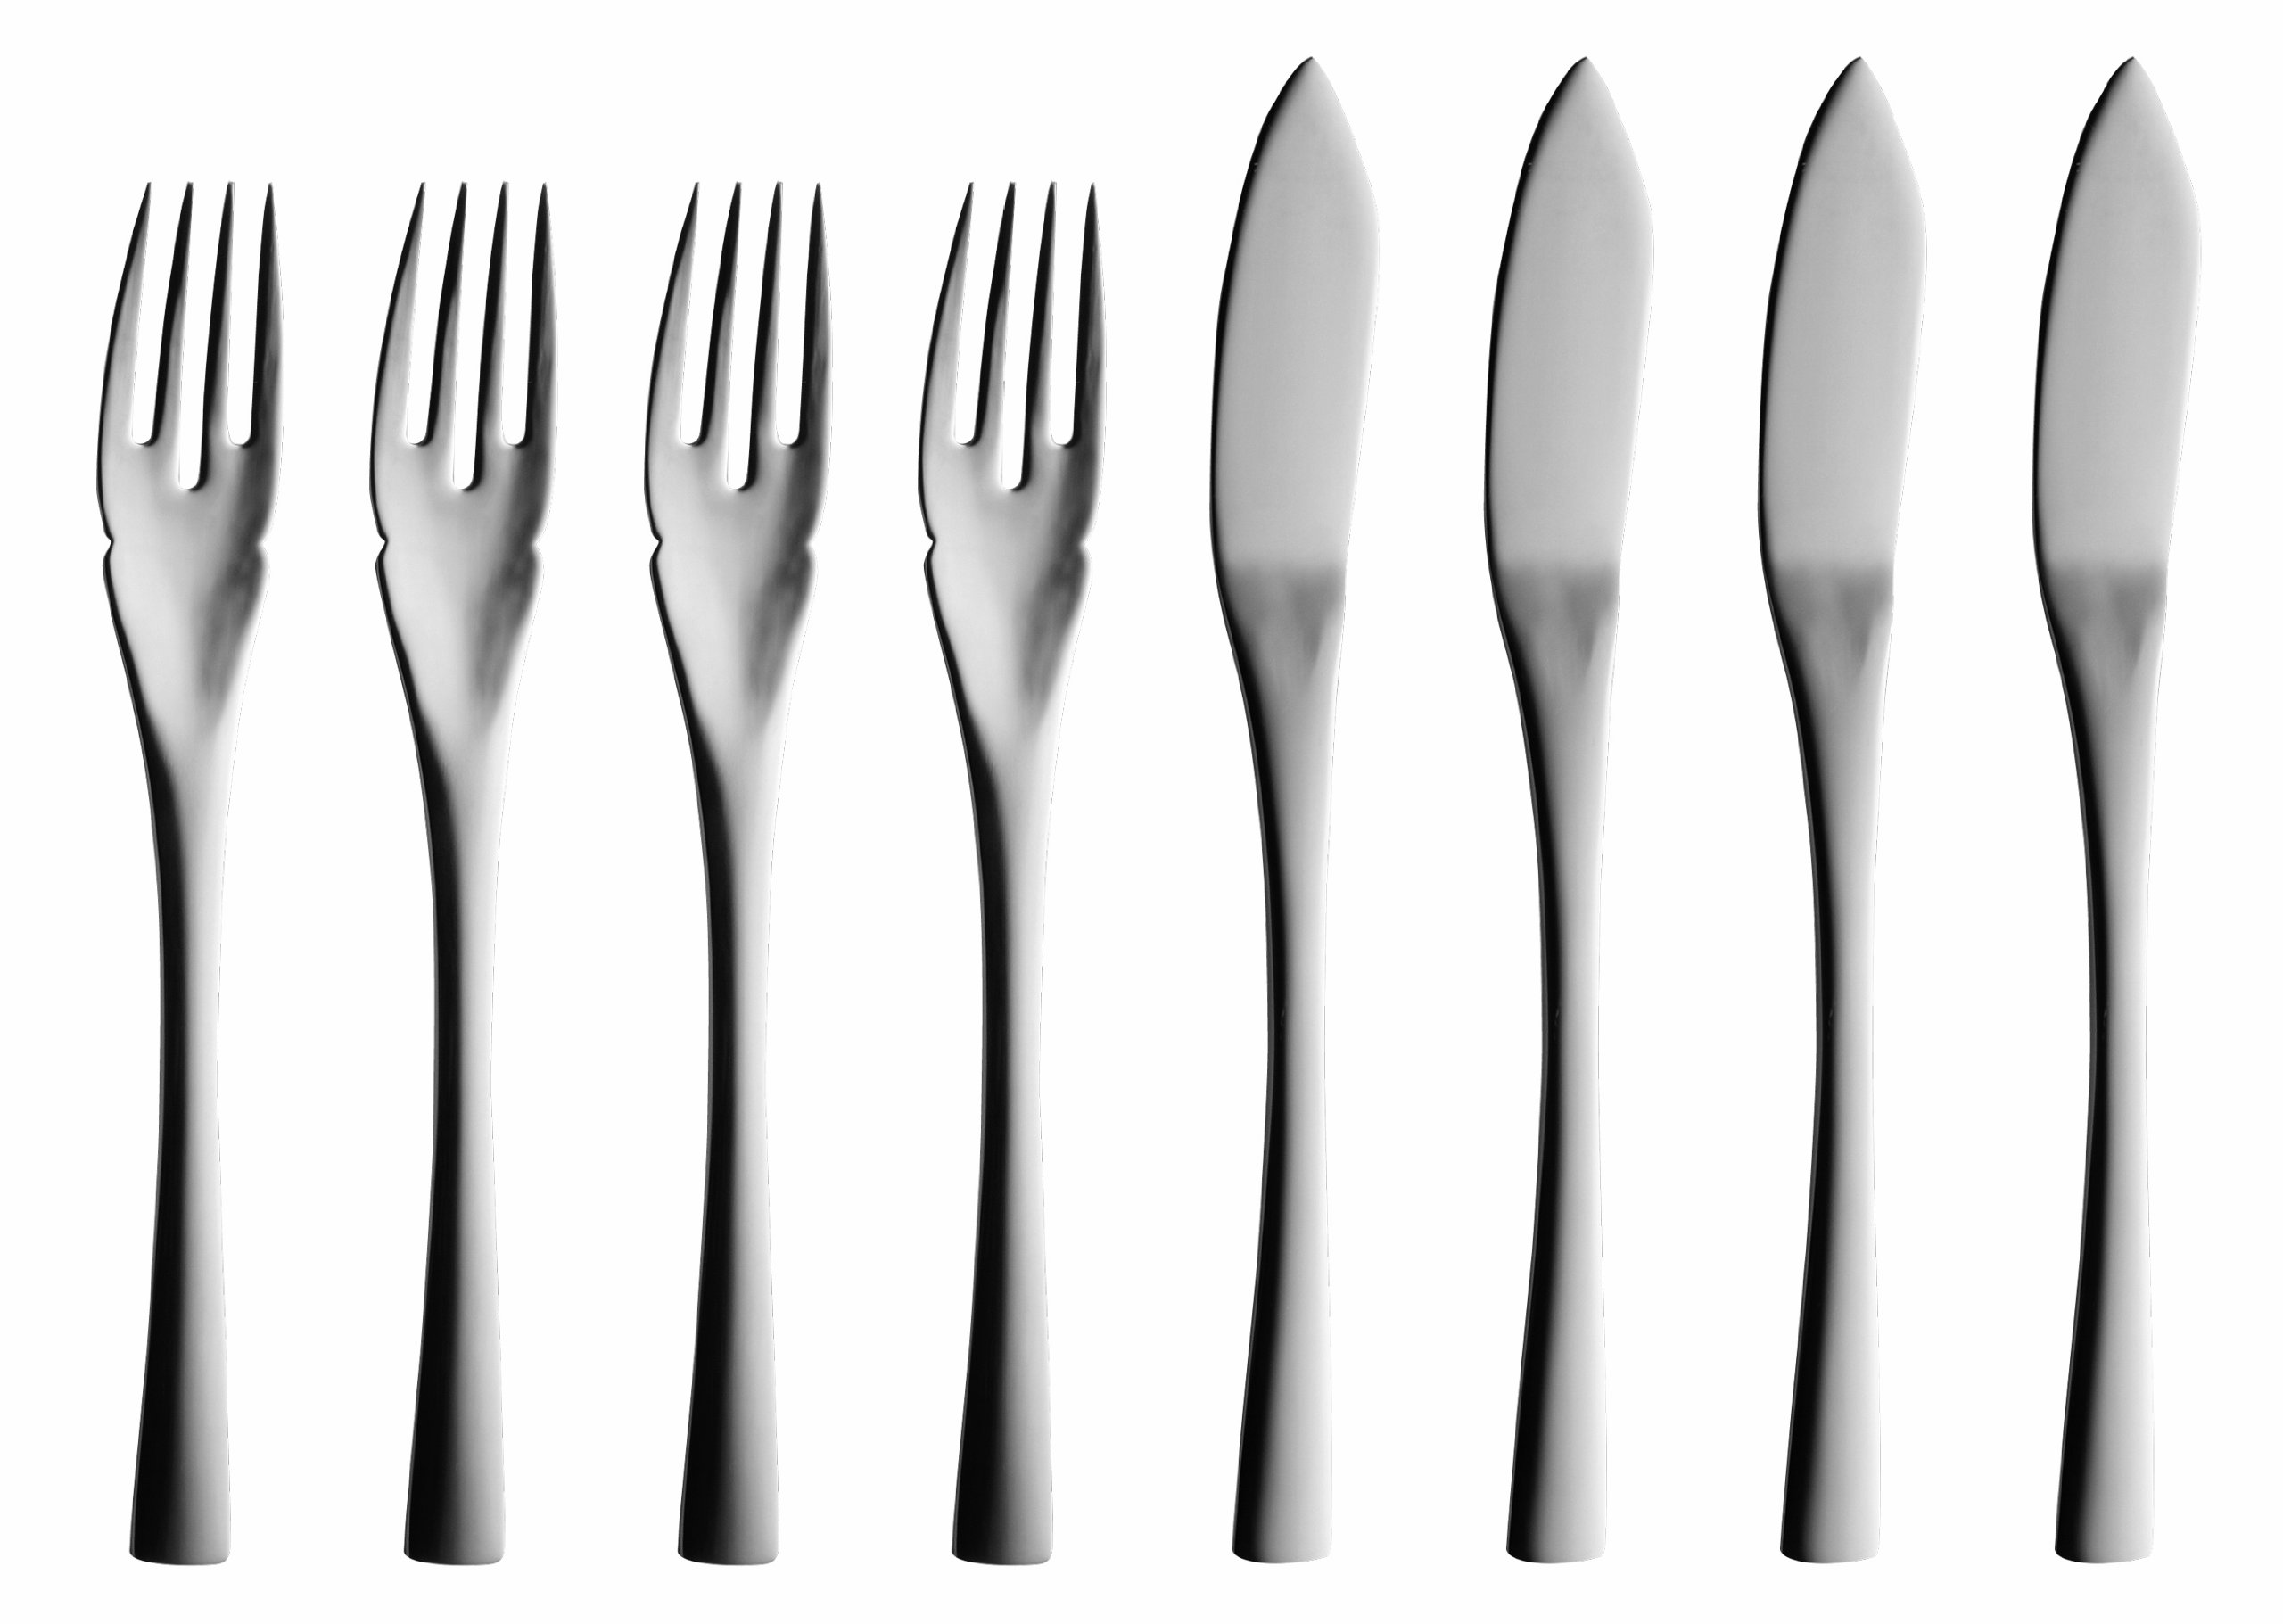 Solex 200402568 Sophia 4-Piece Fish Knives, Set of 8 by Solex